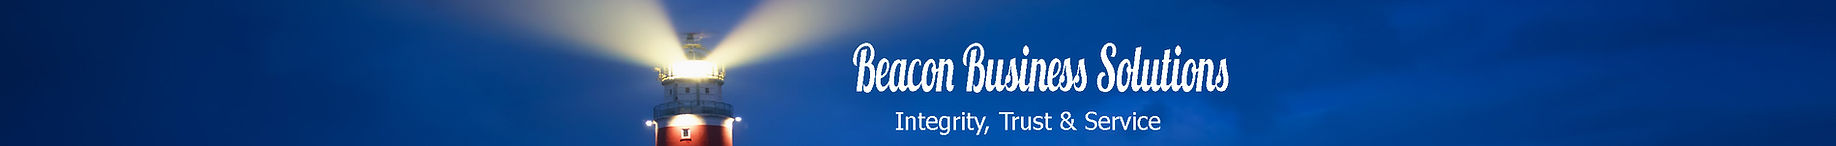 Beacon-Business-Solutions-Website-Banner